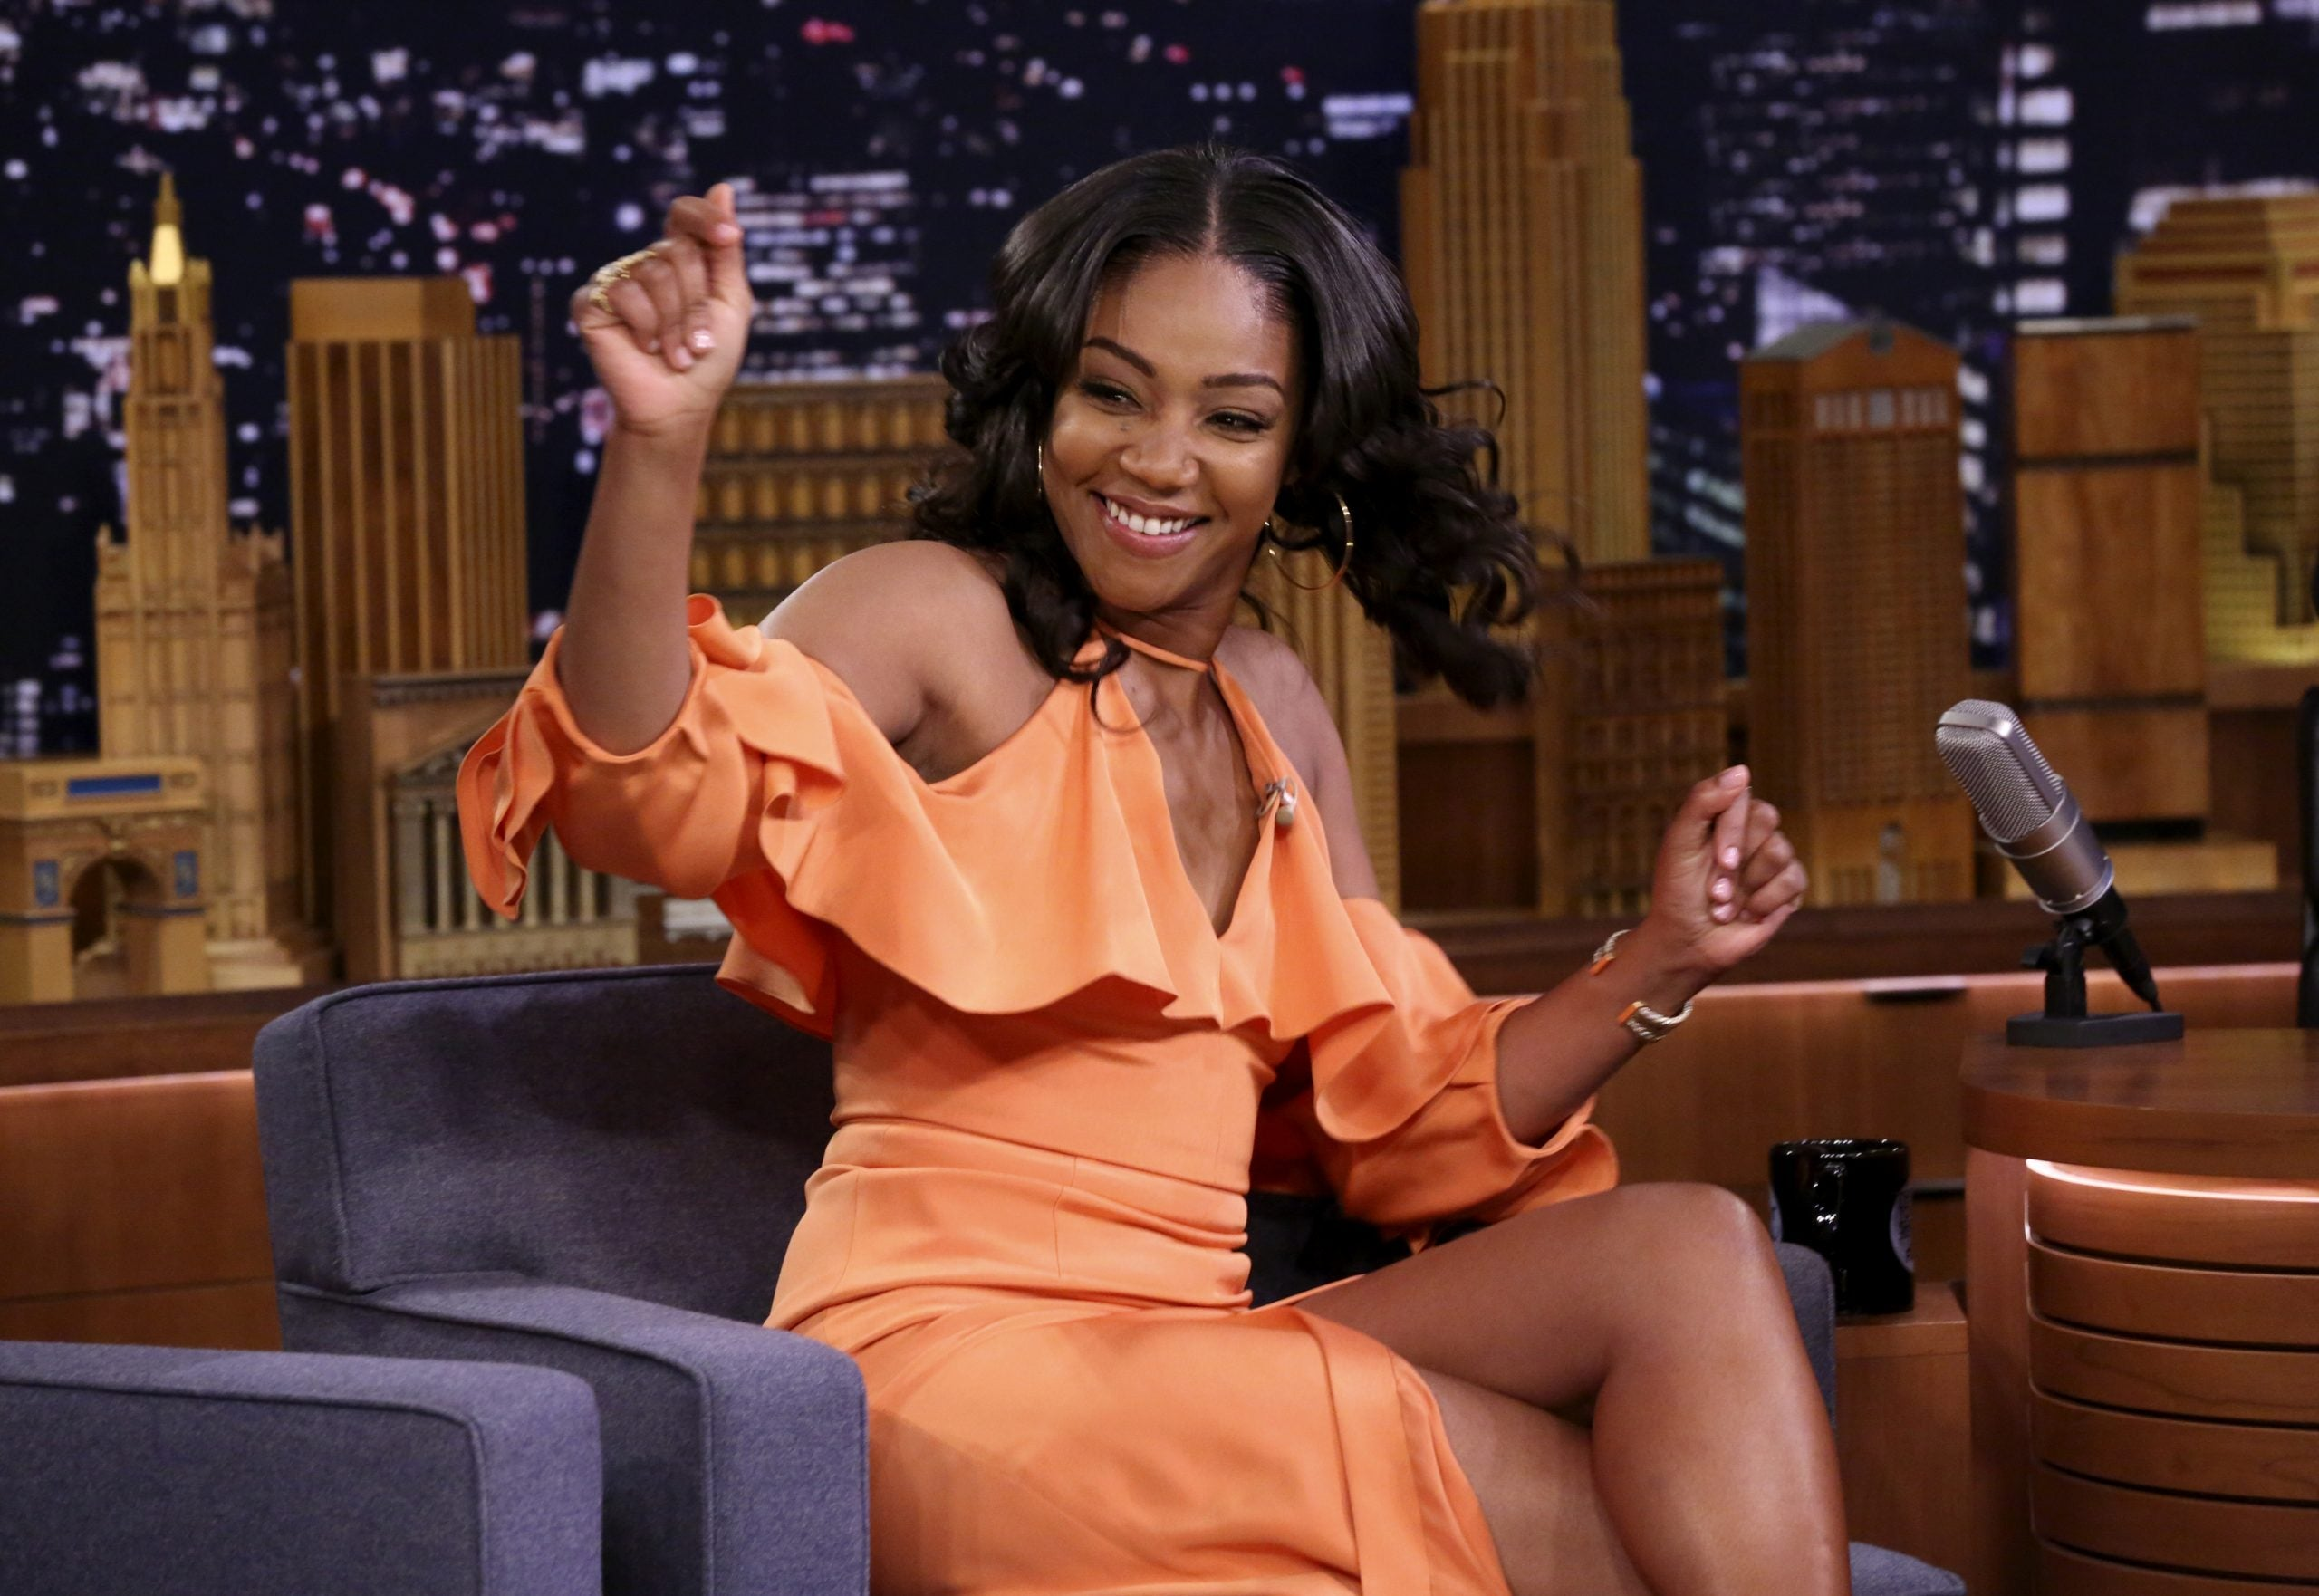 Tiffany Haddish Turns On The Sexy With Common In The Silhouette Challenge